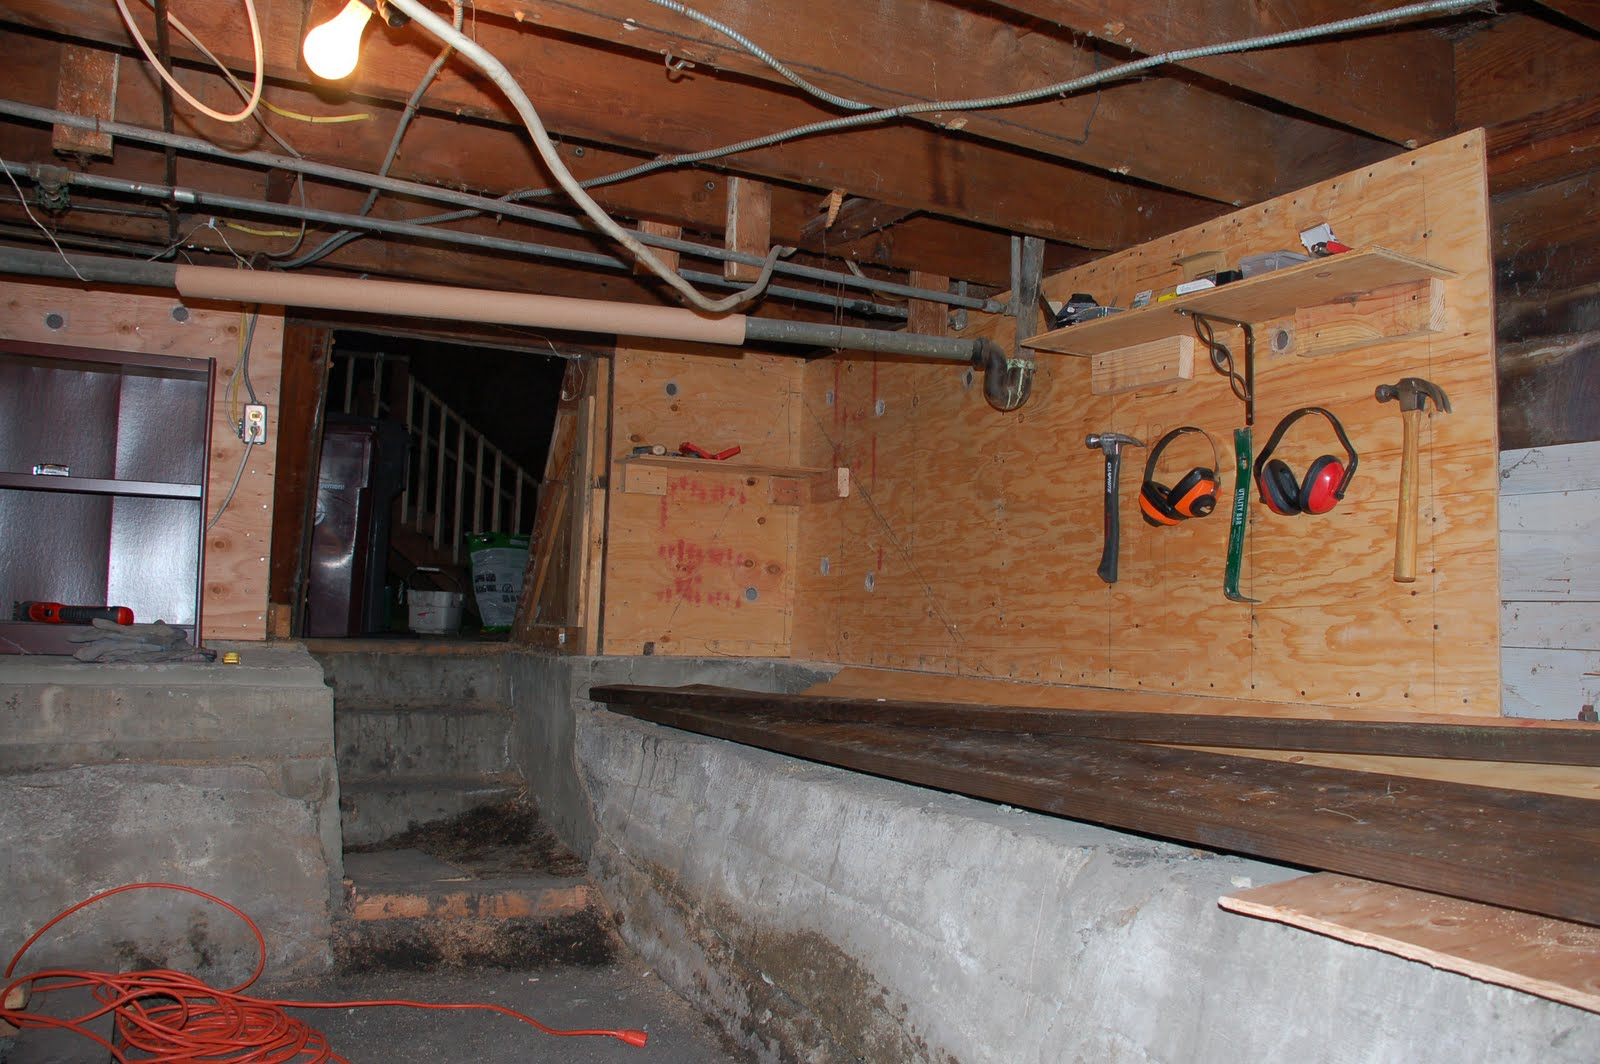 finally after months of hard work our basement retrofit was finished